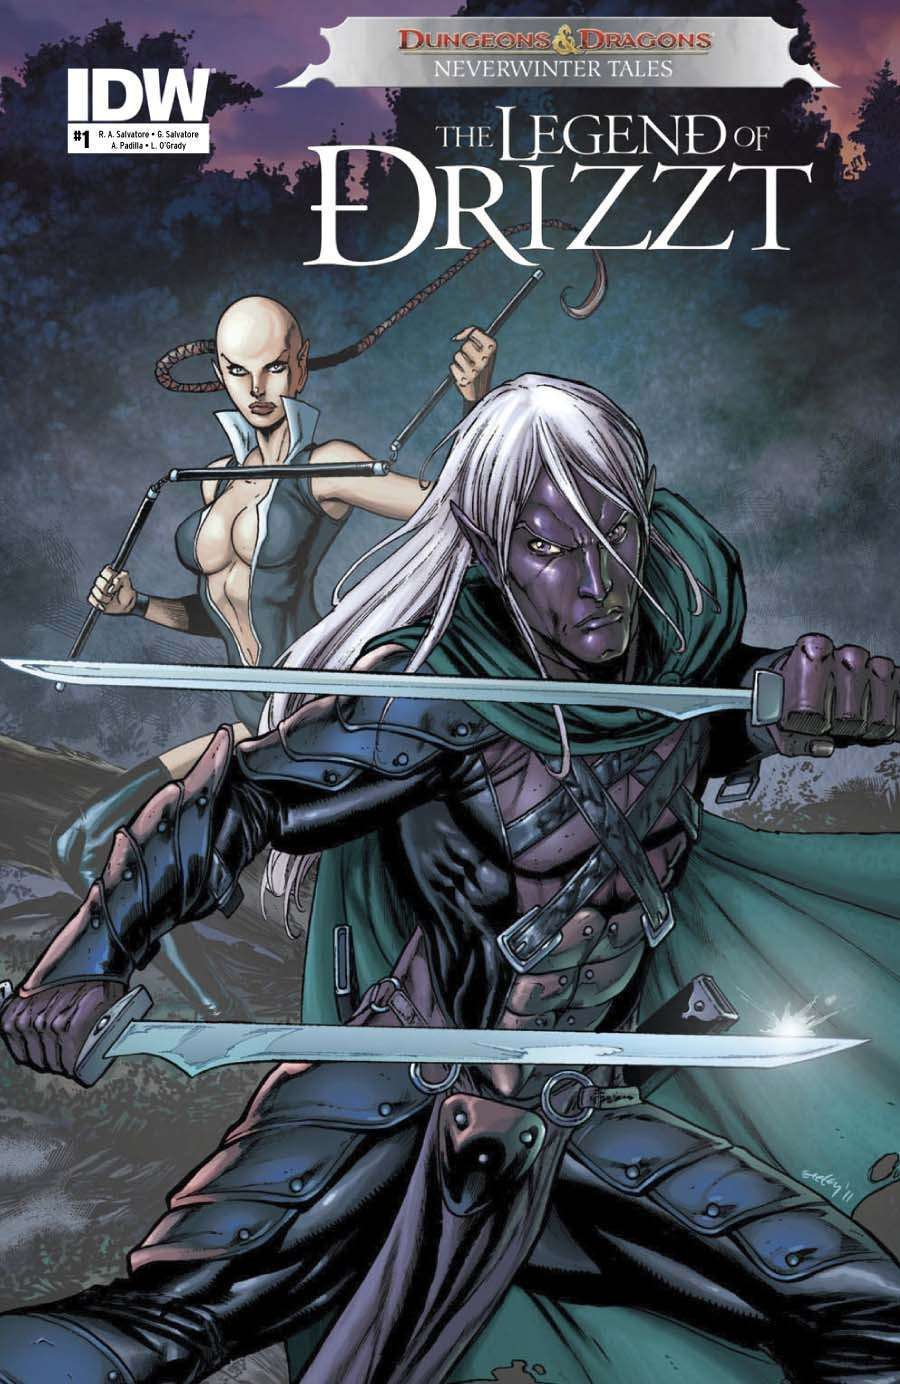 IDW Action Pack [BUNDLE] - IDW Publishing | D&D: The Legend of Drizzt |  G I  Joe: A Real American Hero | Magic: The Gathering | Dragon Age | Mobile